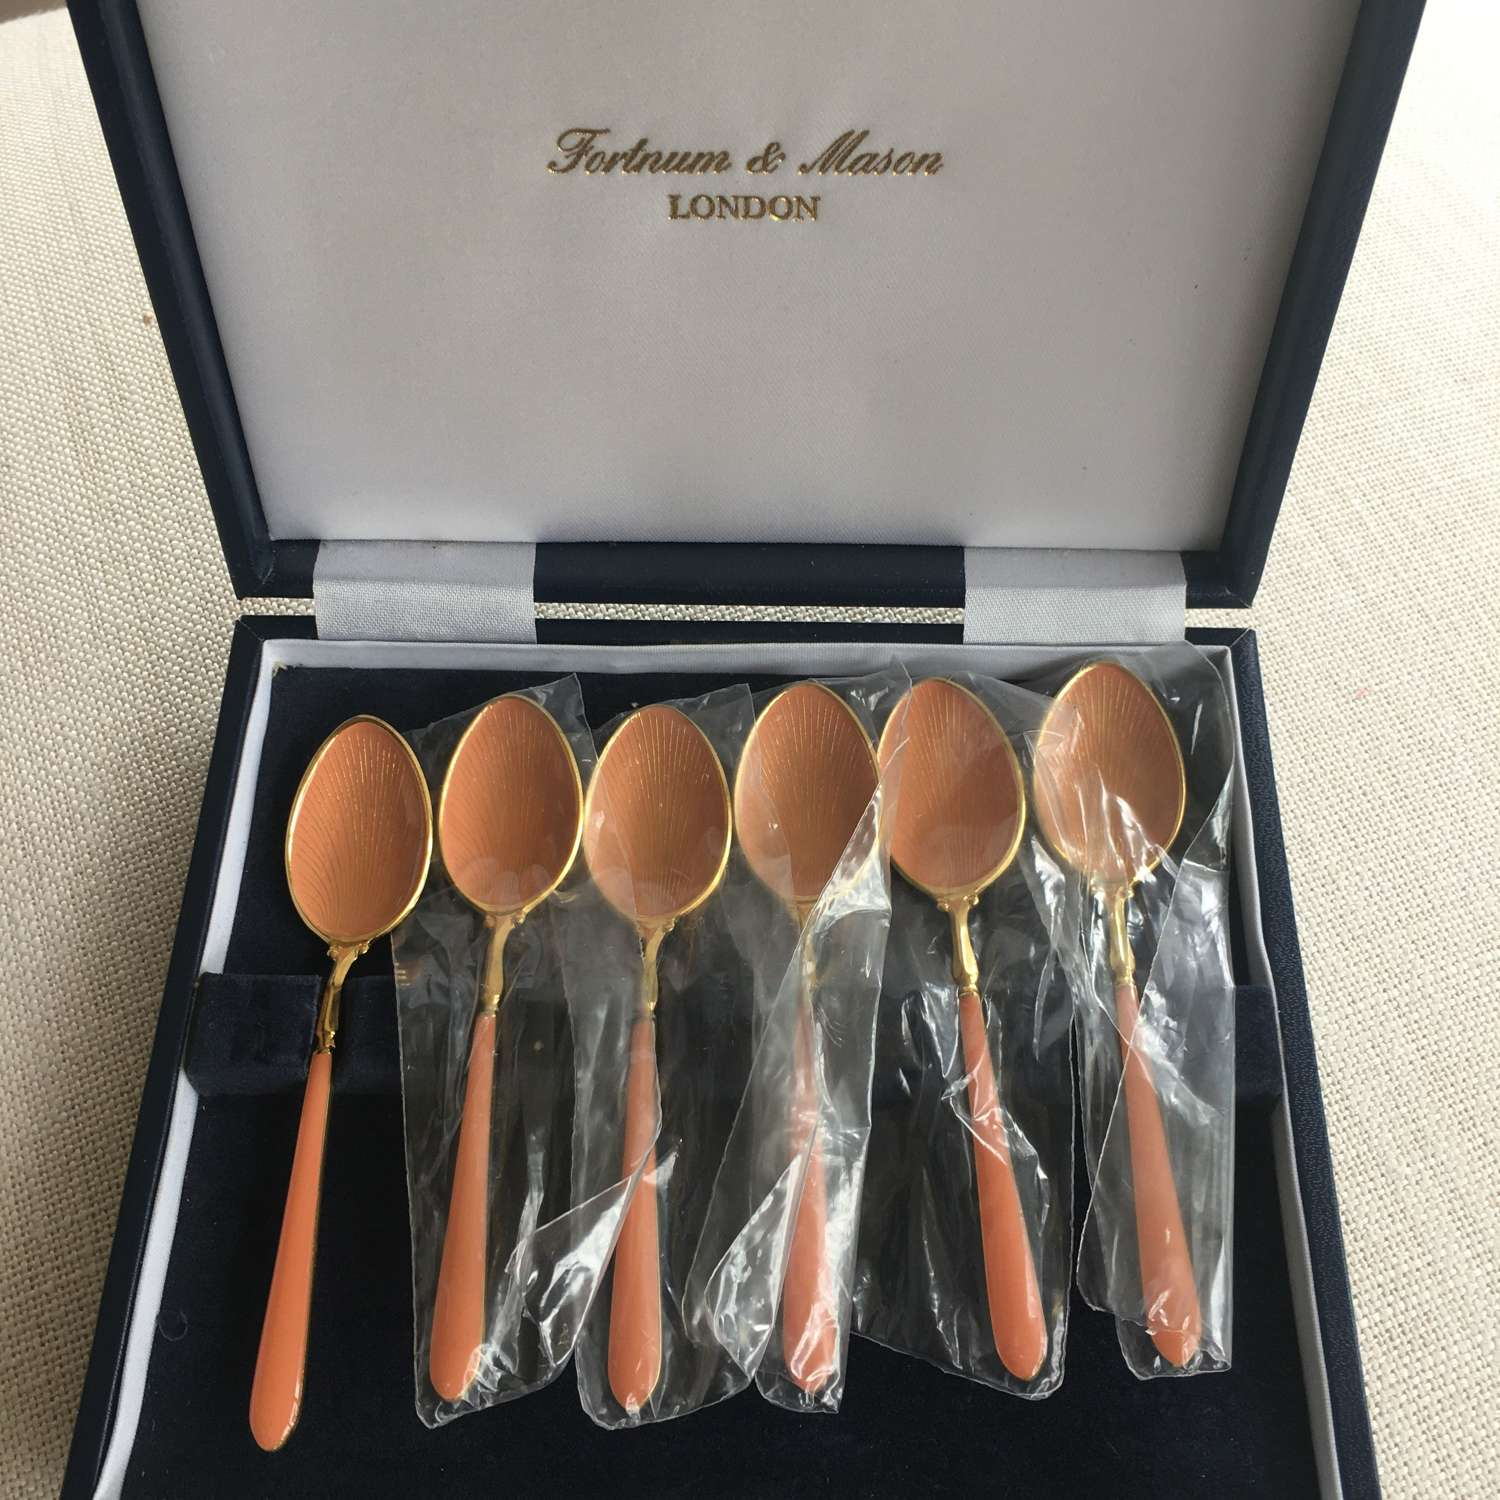 1970s Fortnum and Mason gold plated enamel coffee spoons - new unused